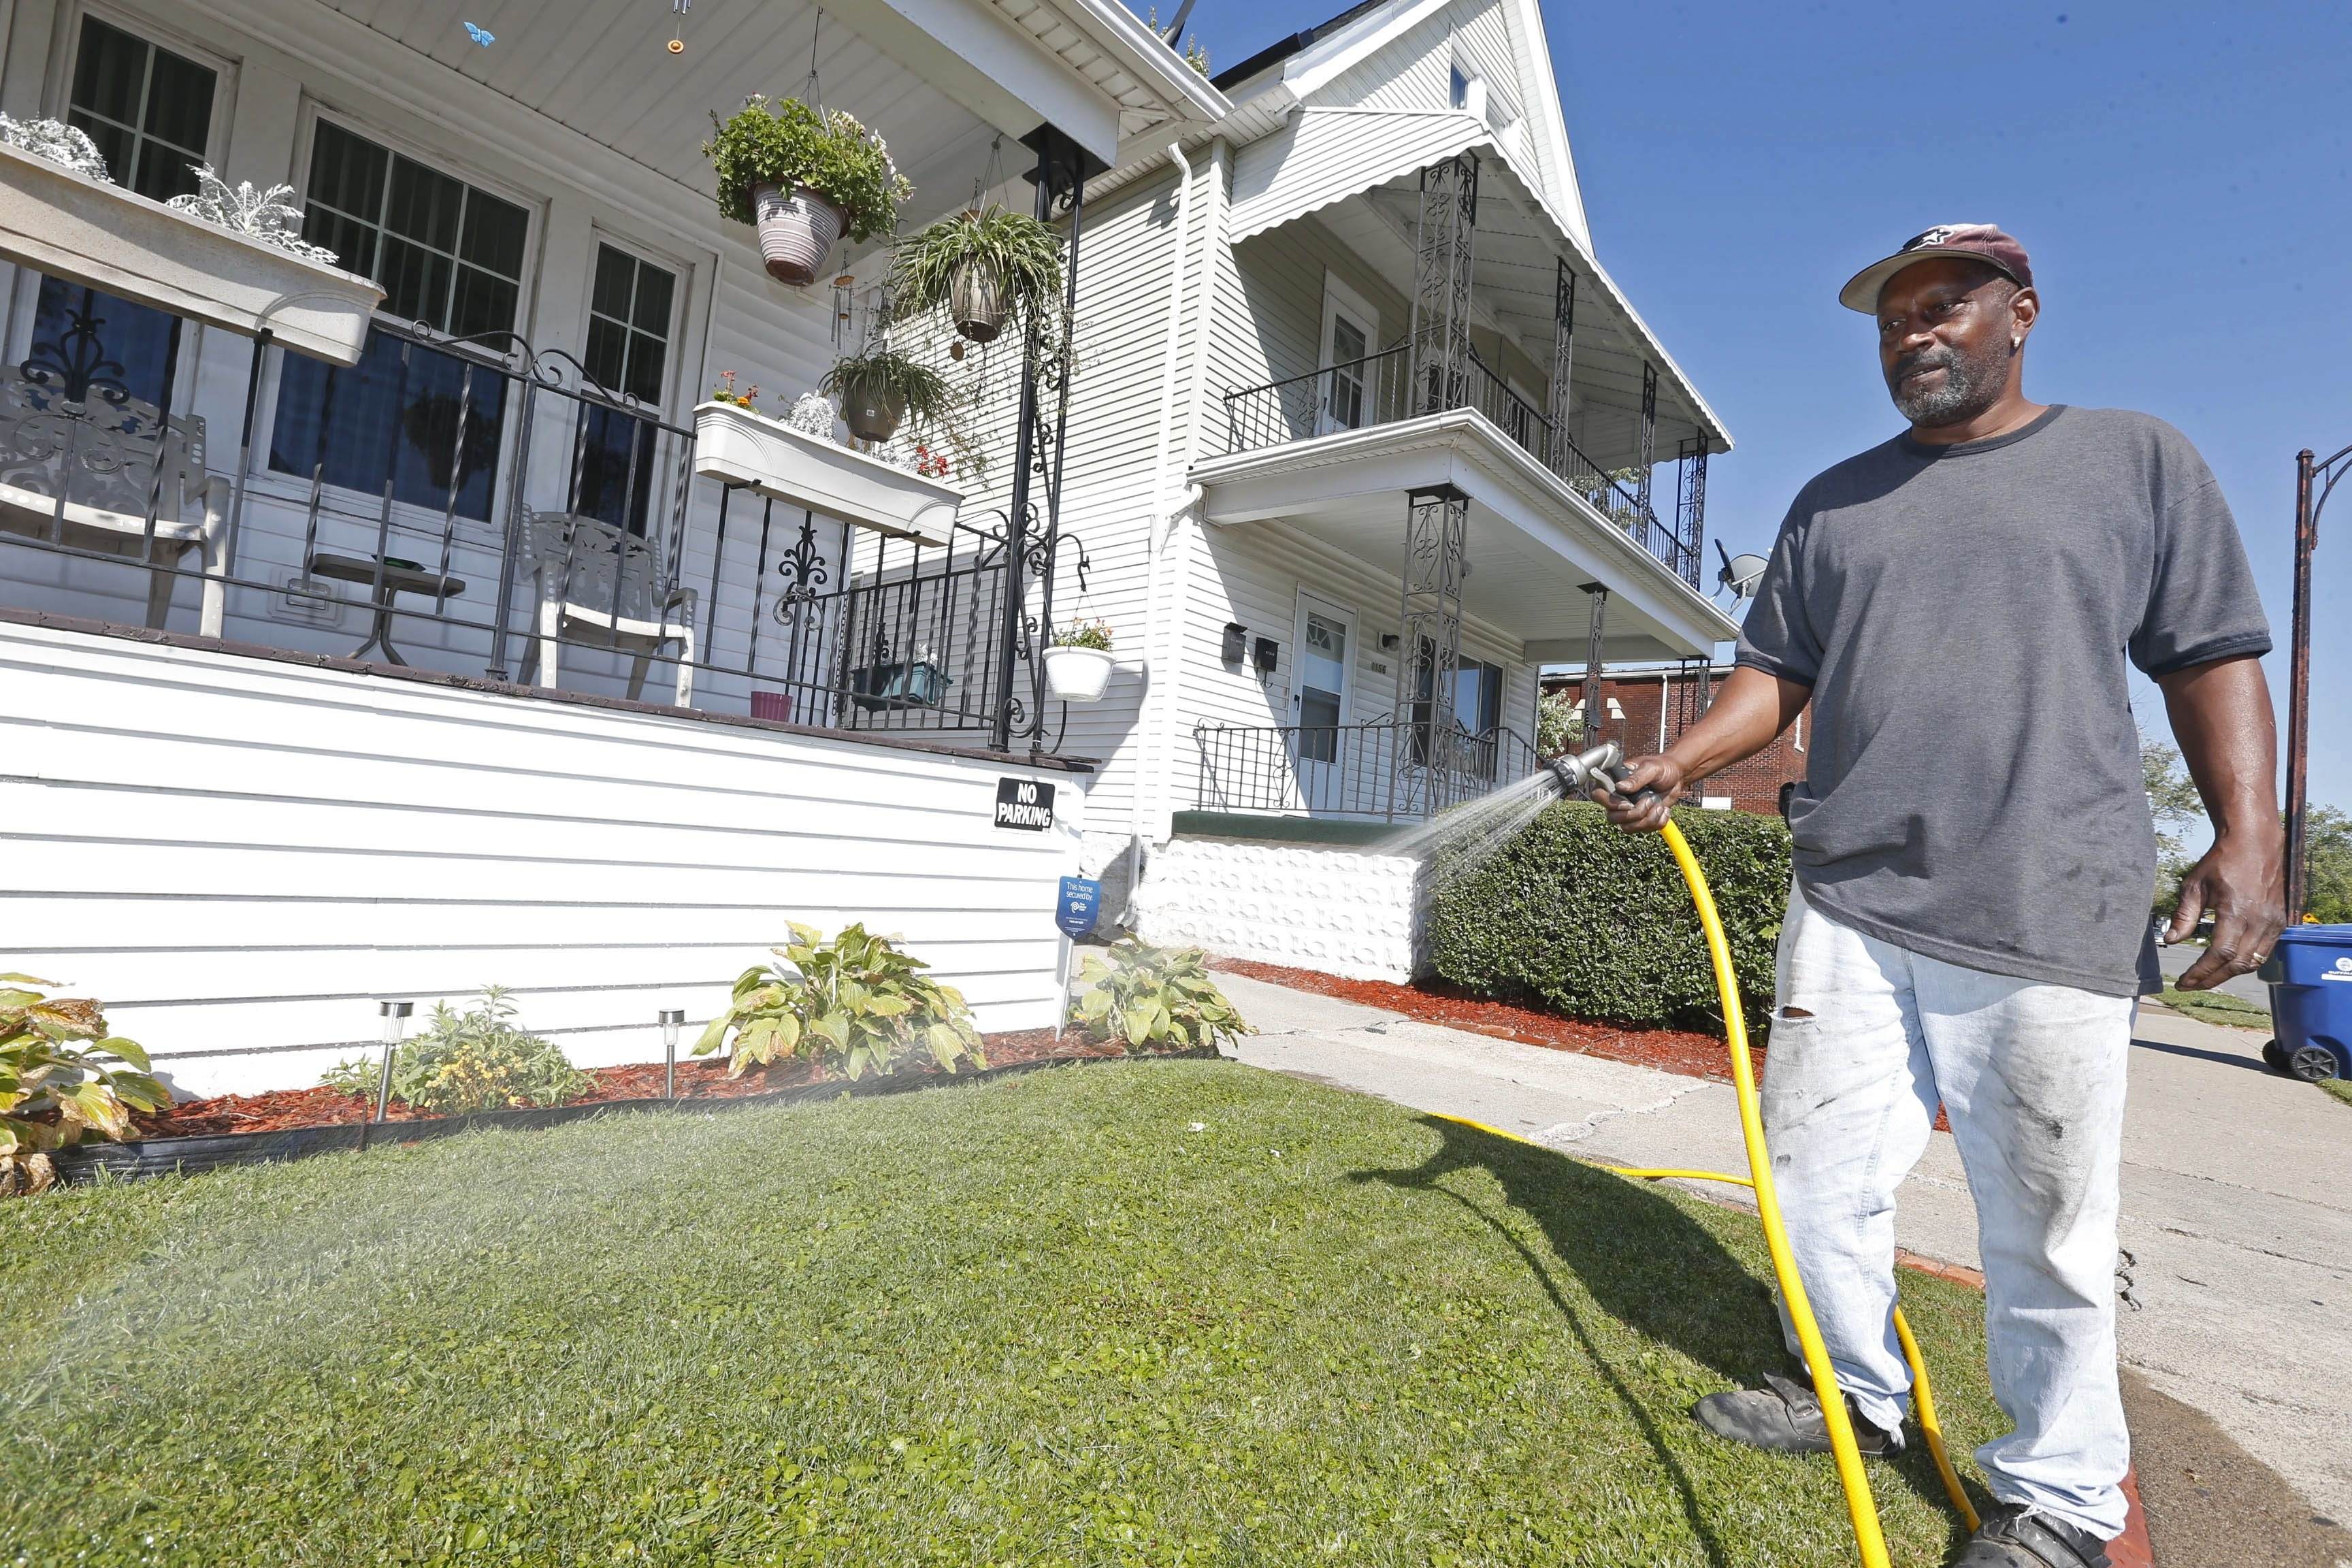 Kenneth Gardner waters his East Ferry Street lawn on a sunny Tuesday, saying he couldn't remember ever doing that so late in the season.